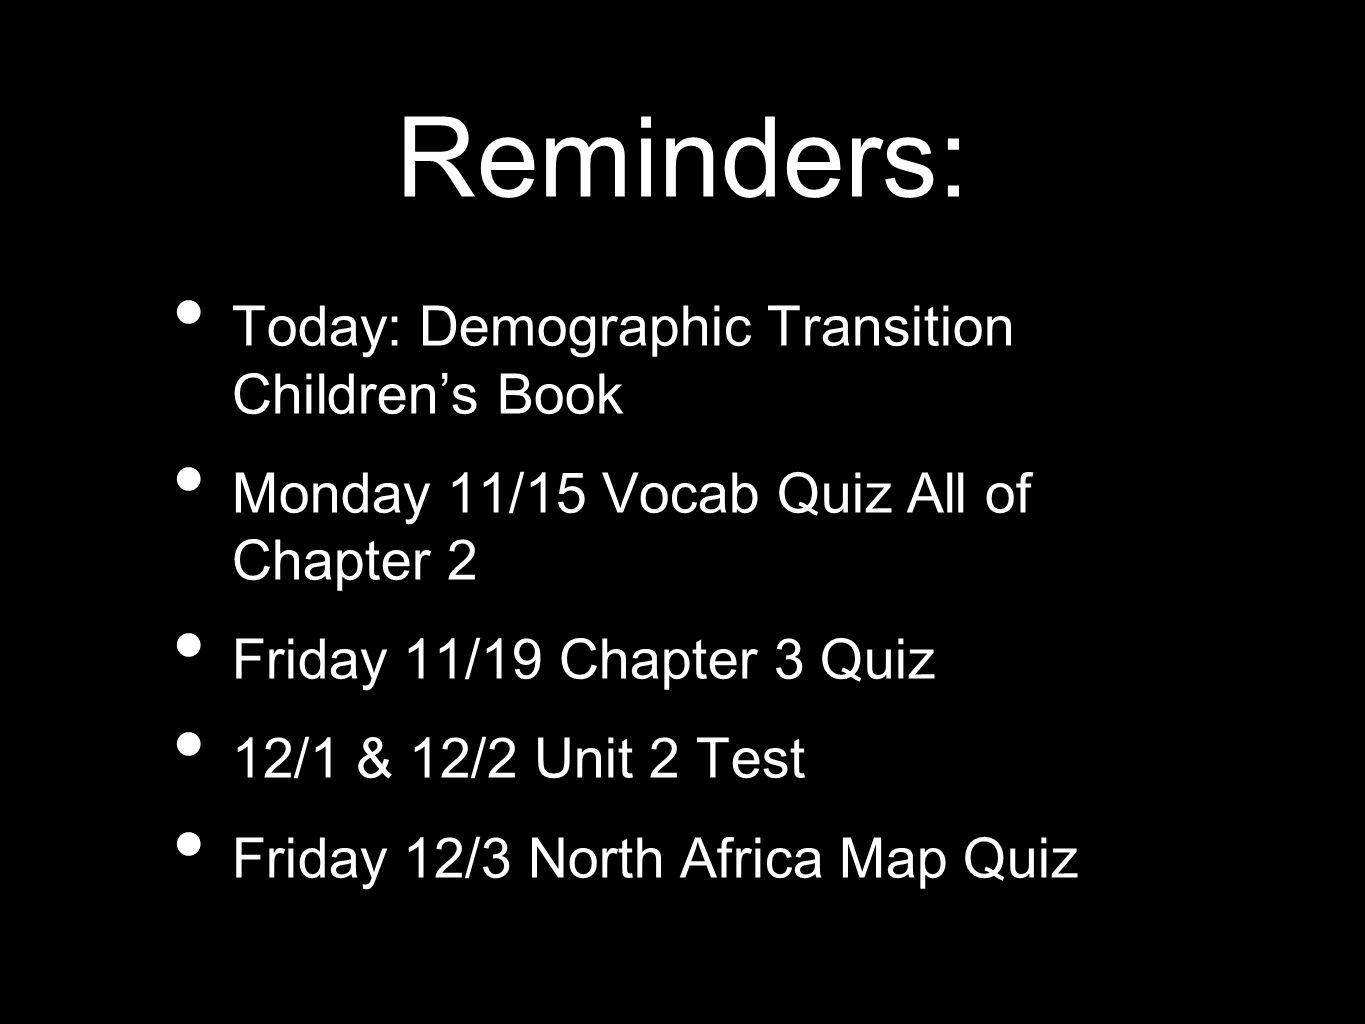 Reminders: Today: Demographic Transition Childrens Book Monday 11/15 Vocab Quiz All of Chapter 2 Friday 11/19 Chapter 3 Quiz 12/1 & 12/2 Unit 2 Test F